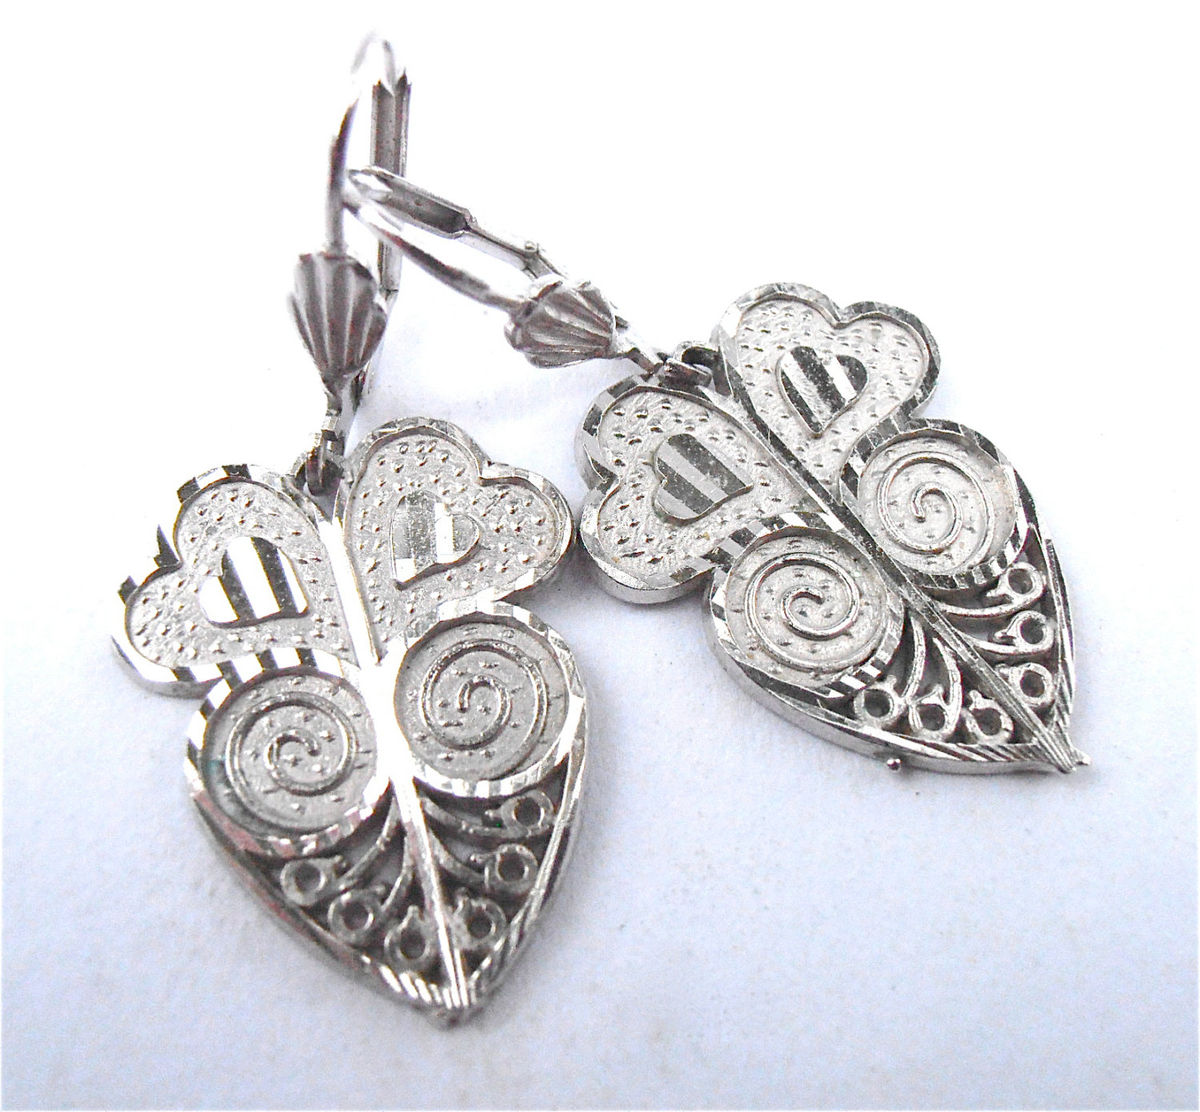 Vintage Silver Heart Filigree Earrings Lace Dangling Tone Shiny Etched Engraved Textured Jewelry Jewellery Villacollezione